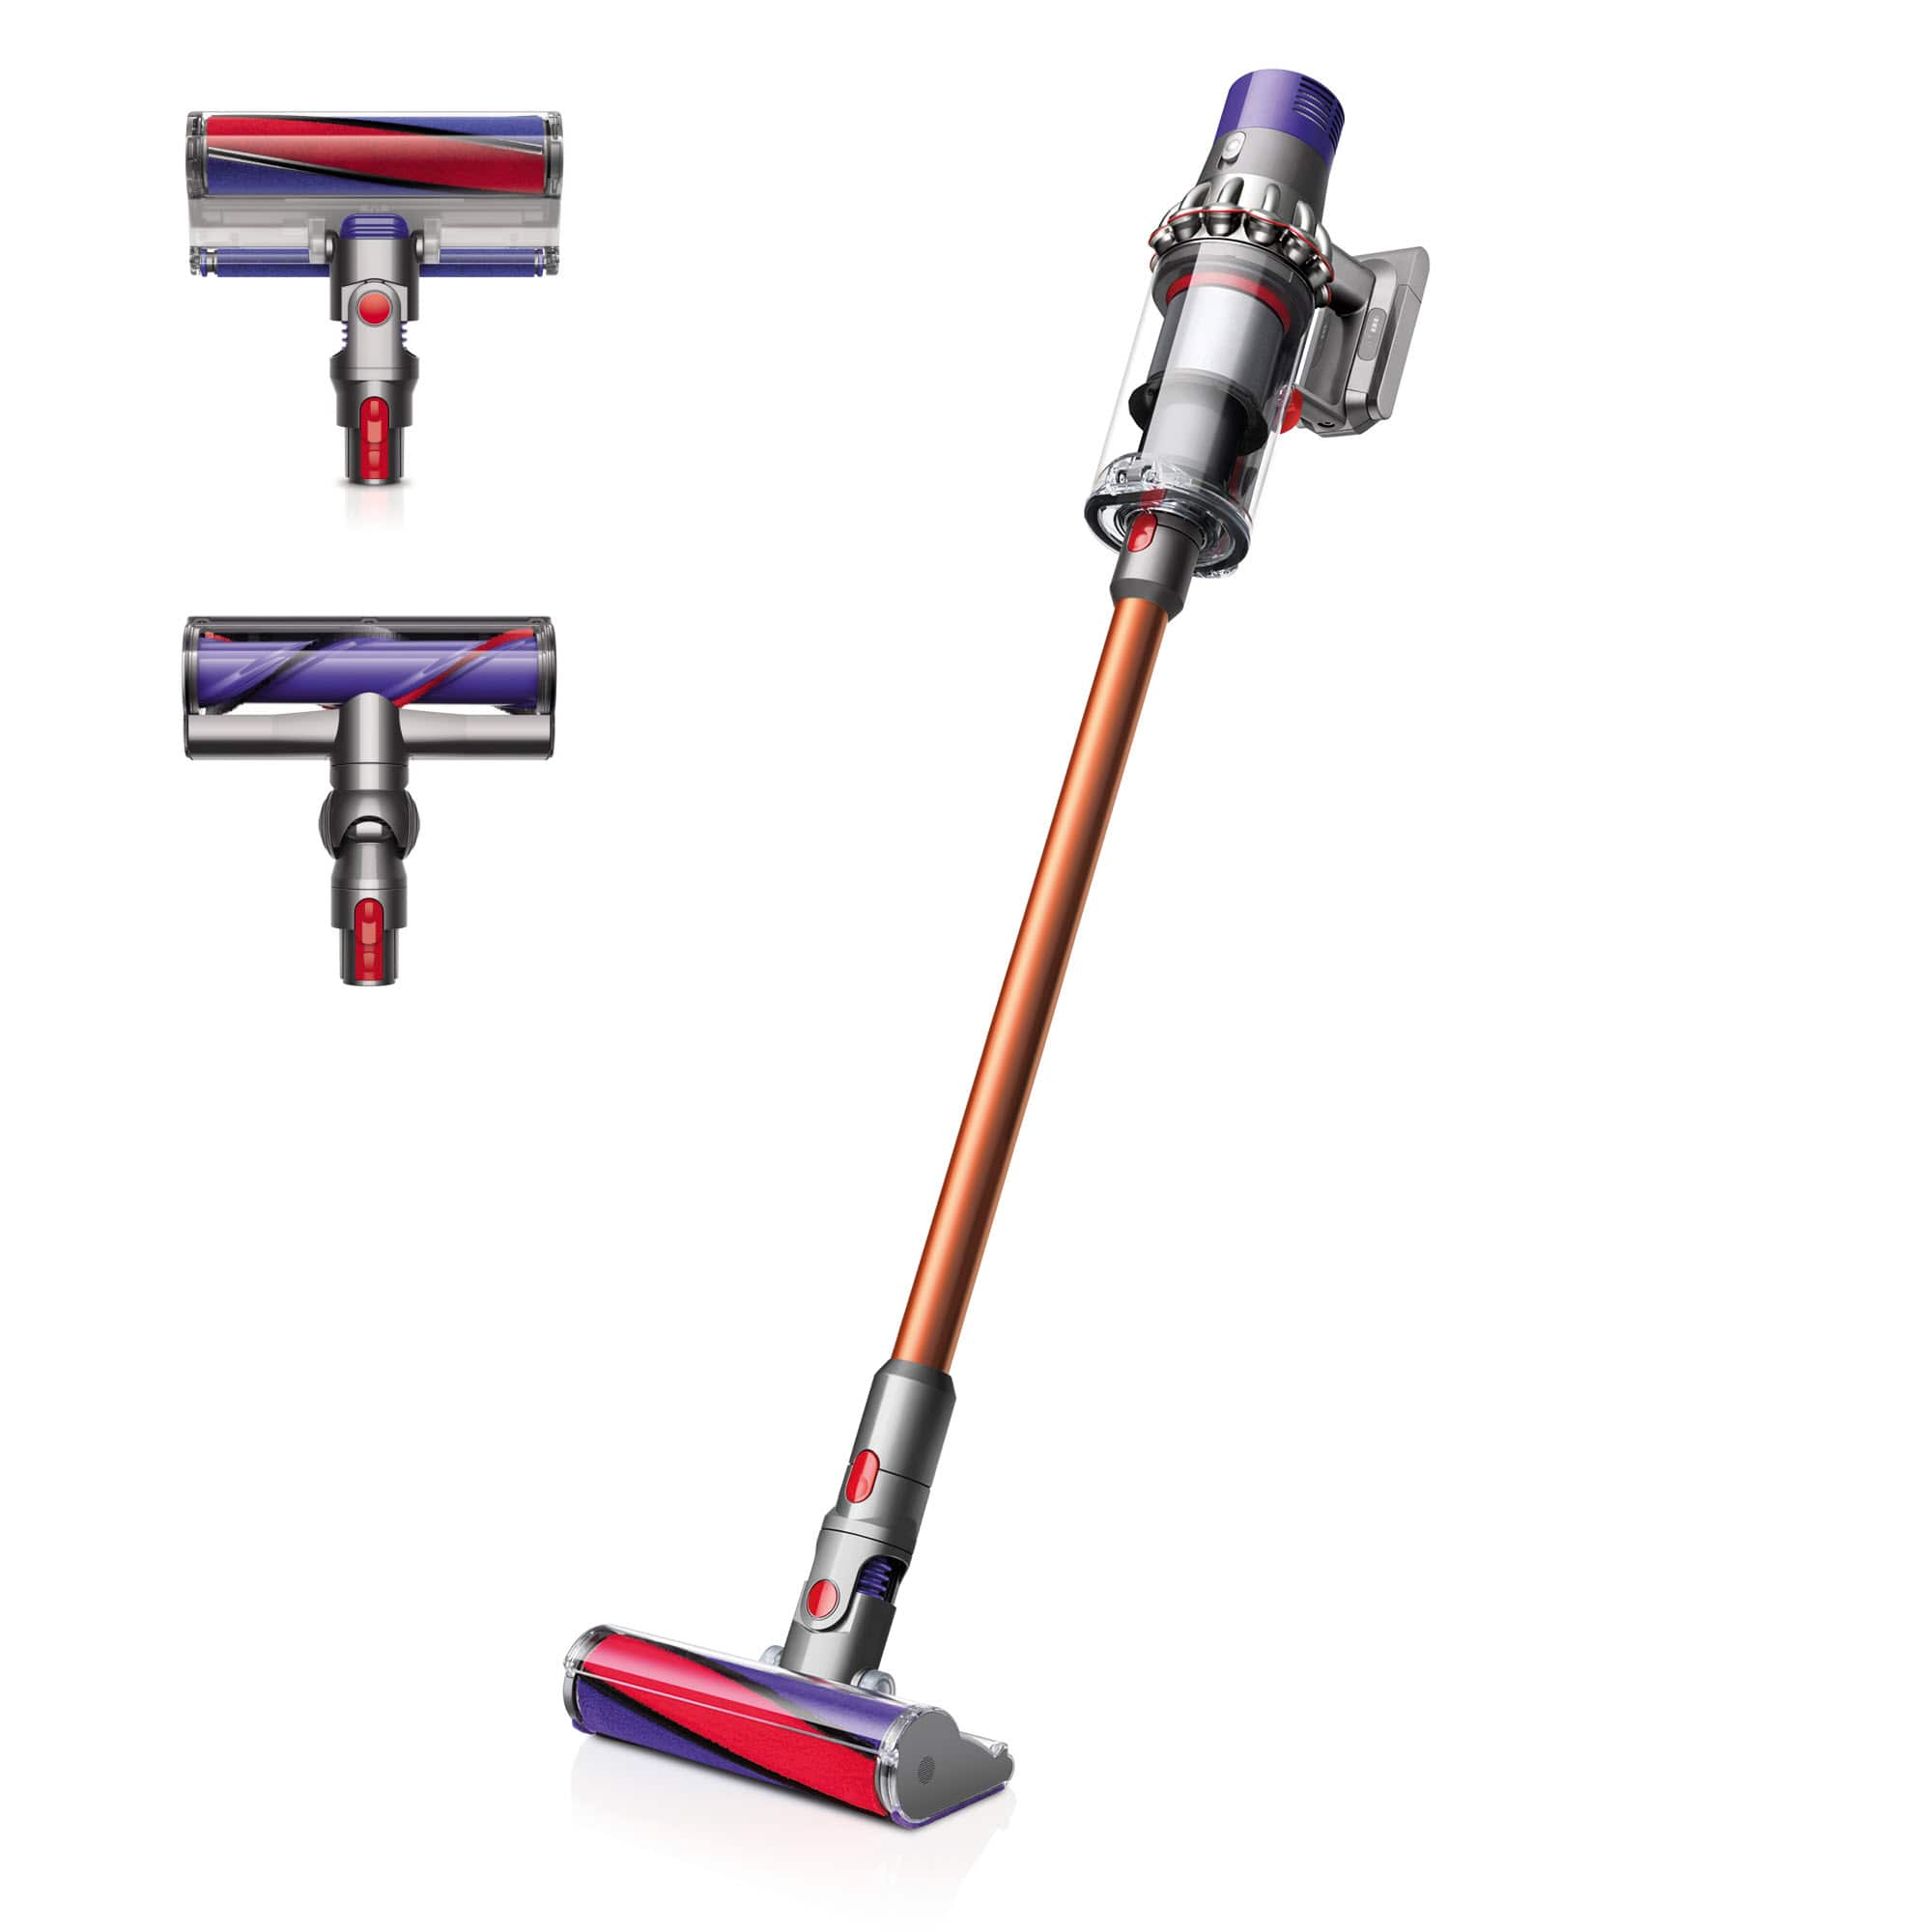 Dyson V10 Absolute Cordless Vacuum Cleaner (Refurbished)